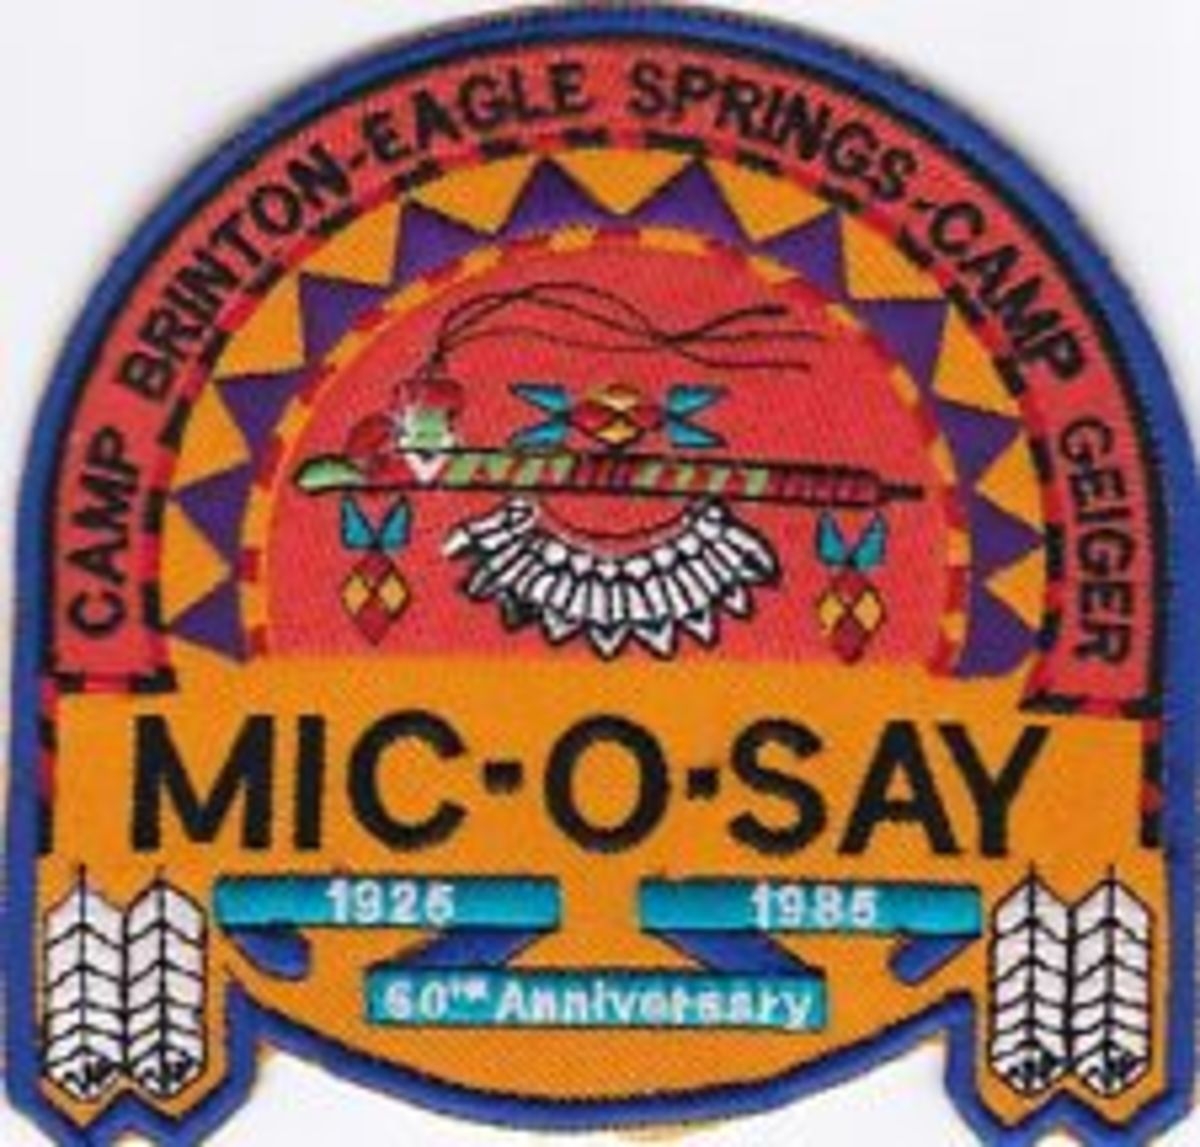 Mic-O-Say patch